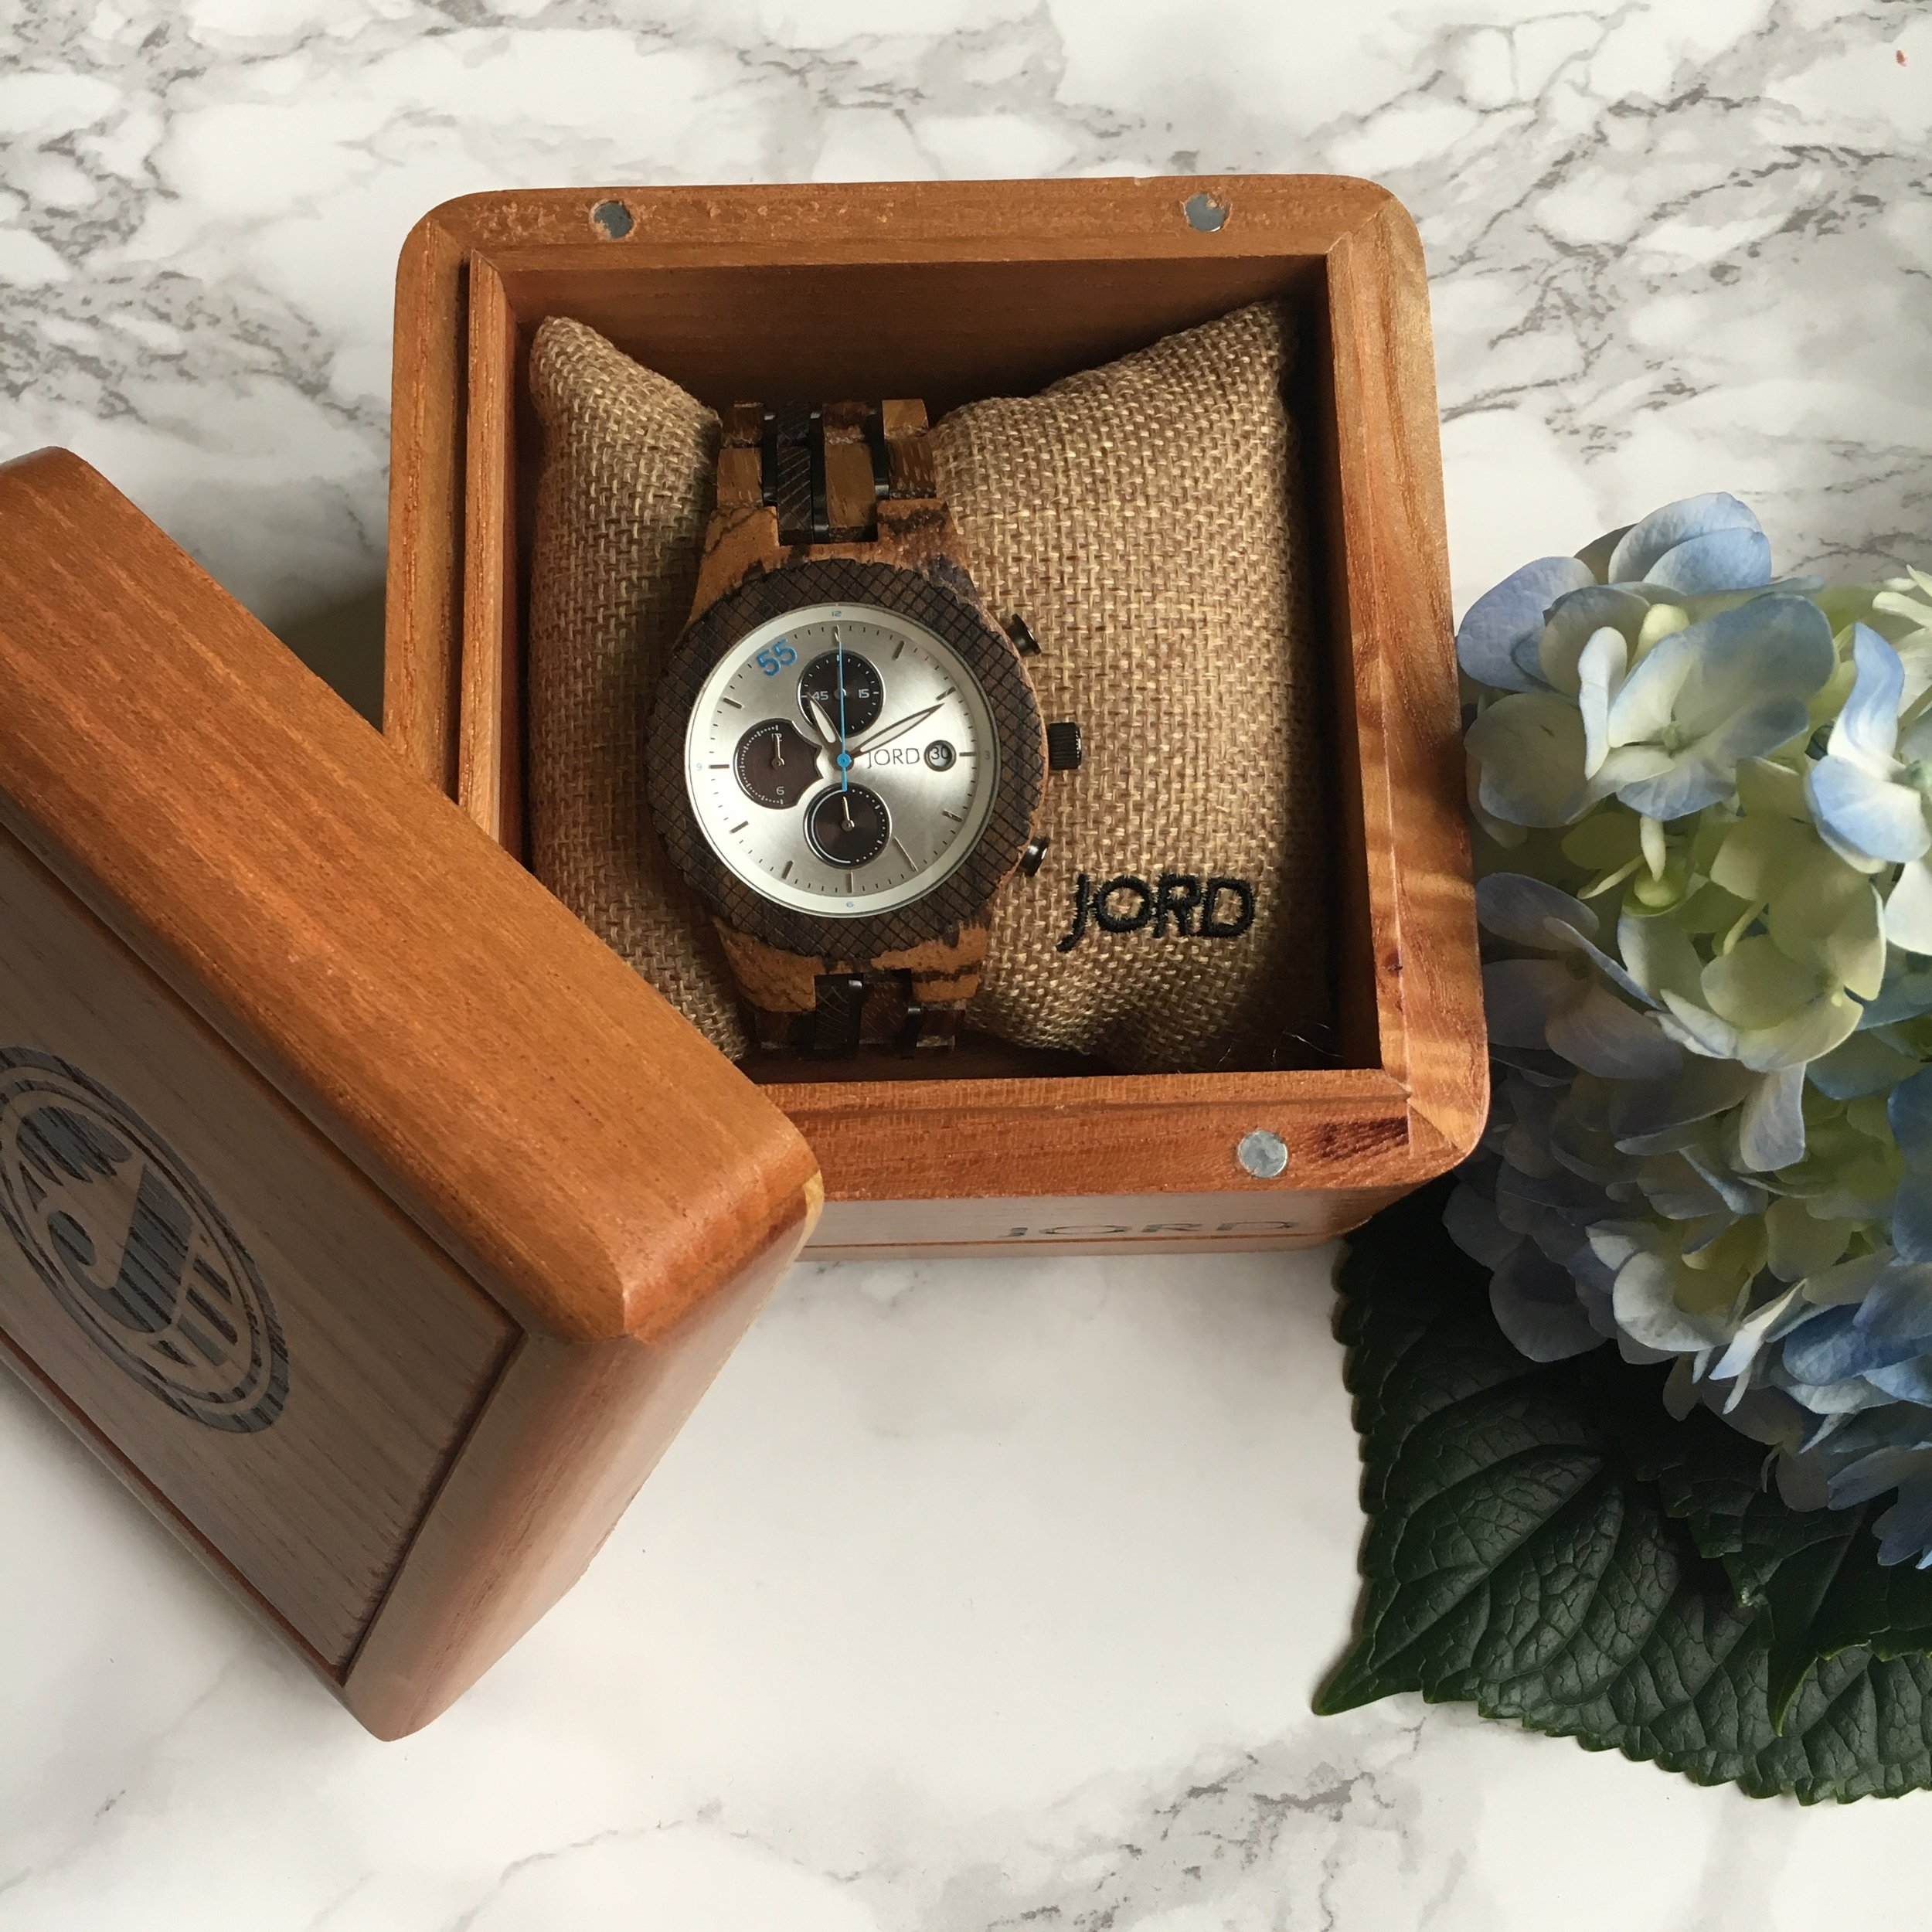 Your watch will arrive presented in a beautiful wooden box - perfect for him to store his cufflinks etc inside...or your trinkets!